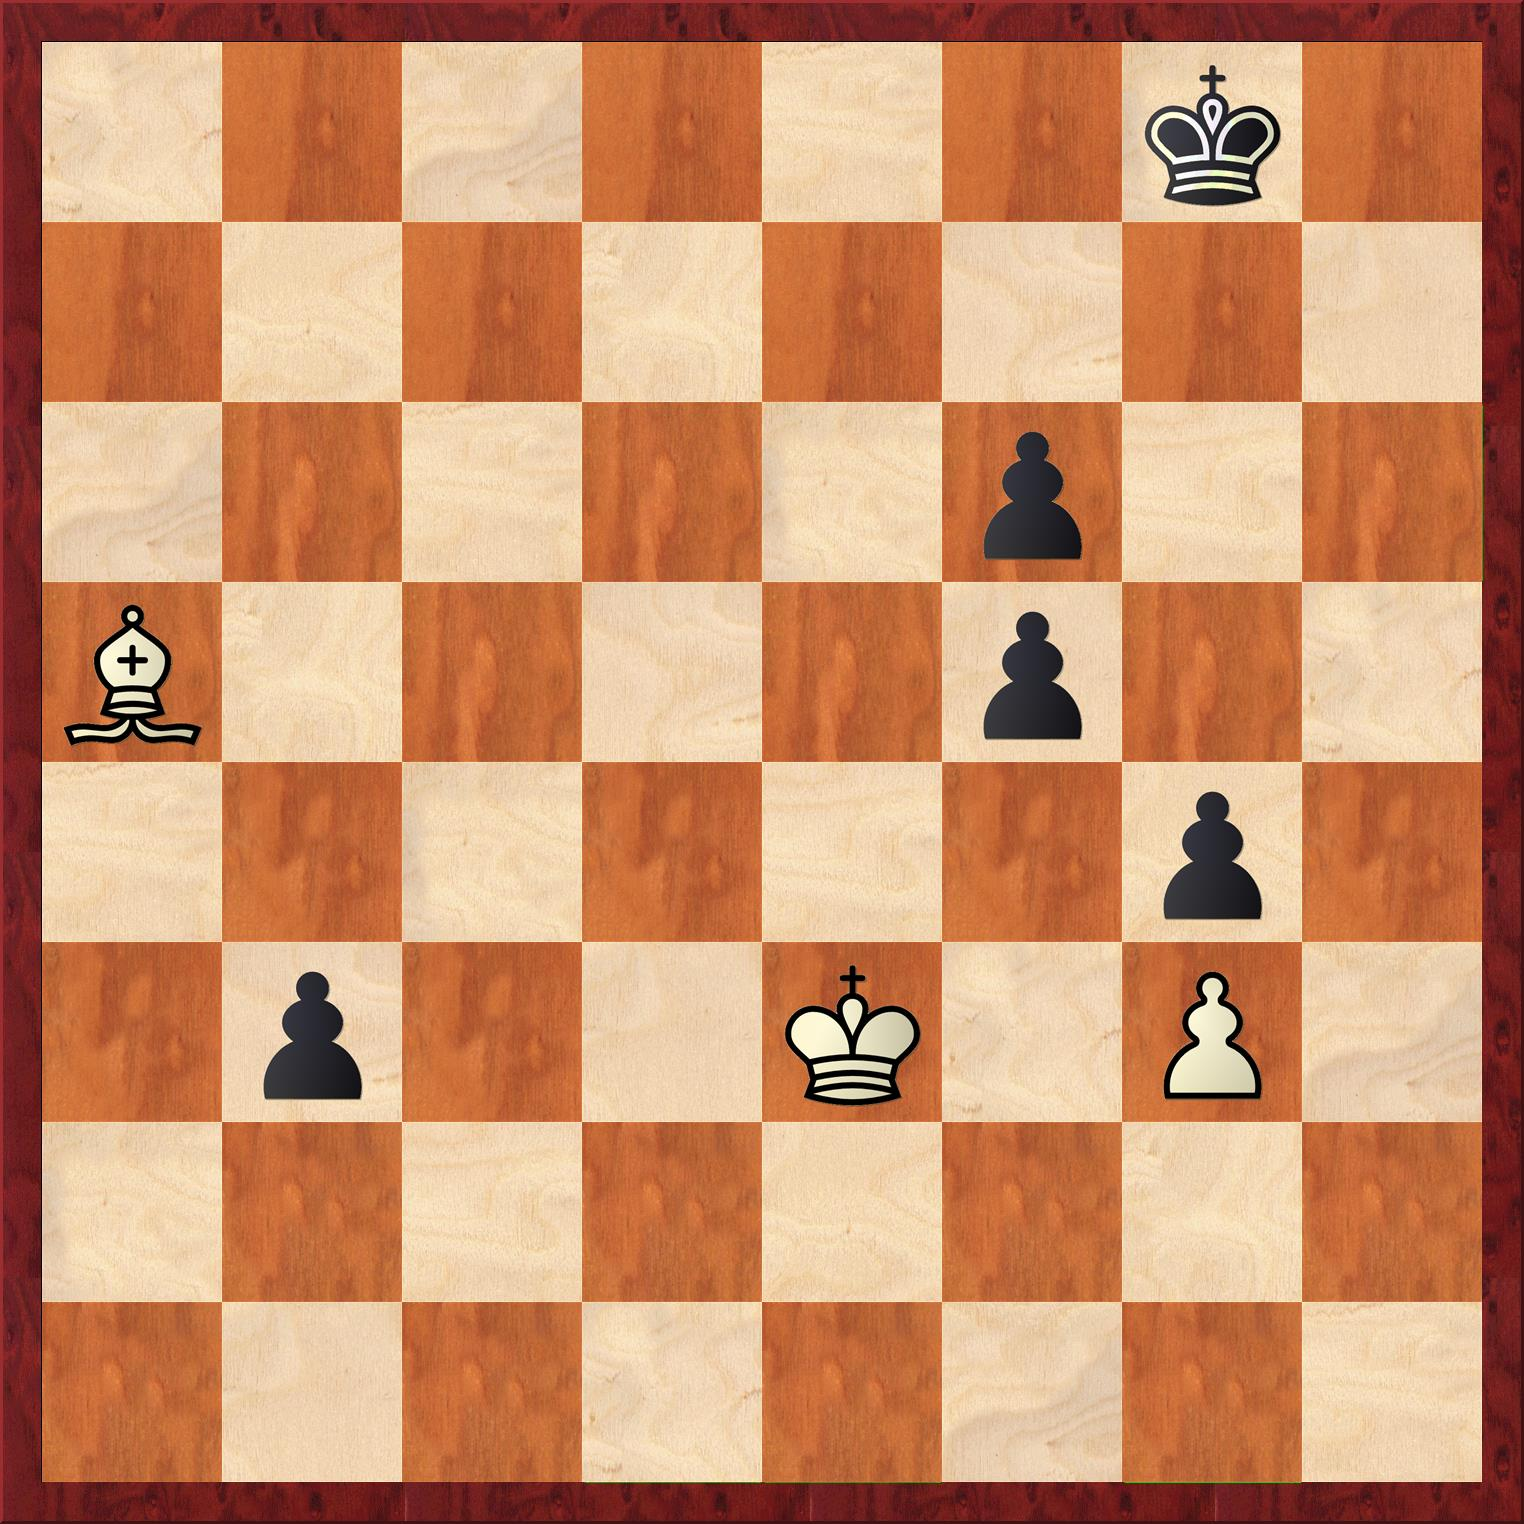 "In Nybäck-Matthews, white apparentlyplayed 47.Kf4 which would lose immediately to 47…b2. After realizing that the move loses immediately, he grabs the piece and ""adjusts"" it, then moved the bishop."